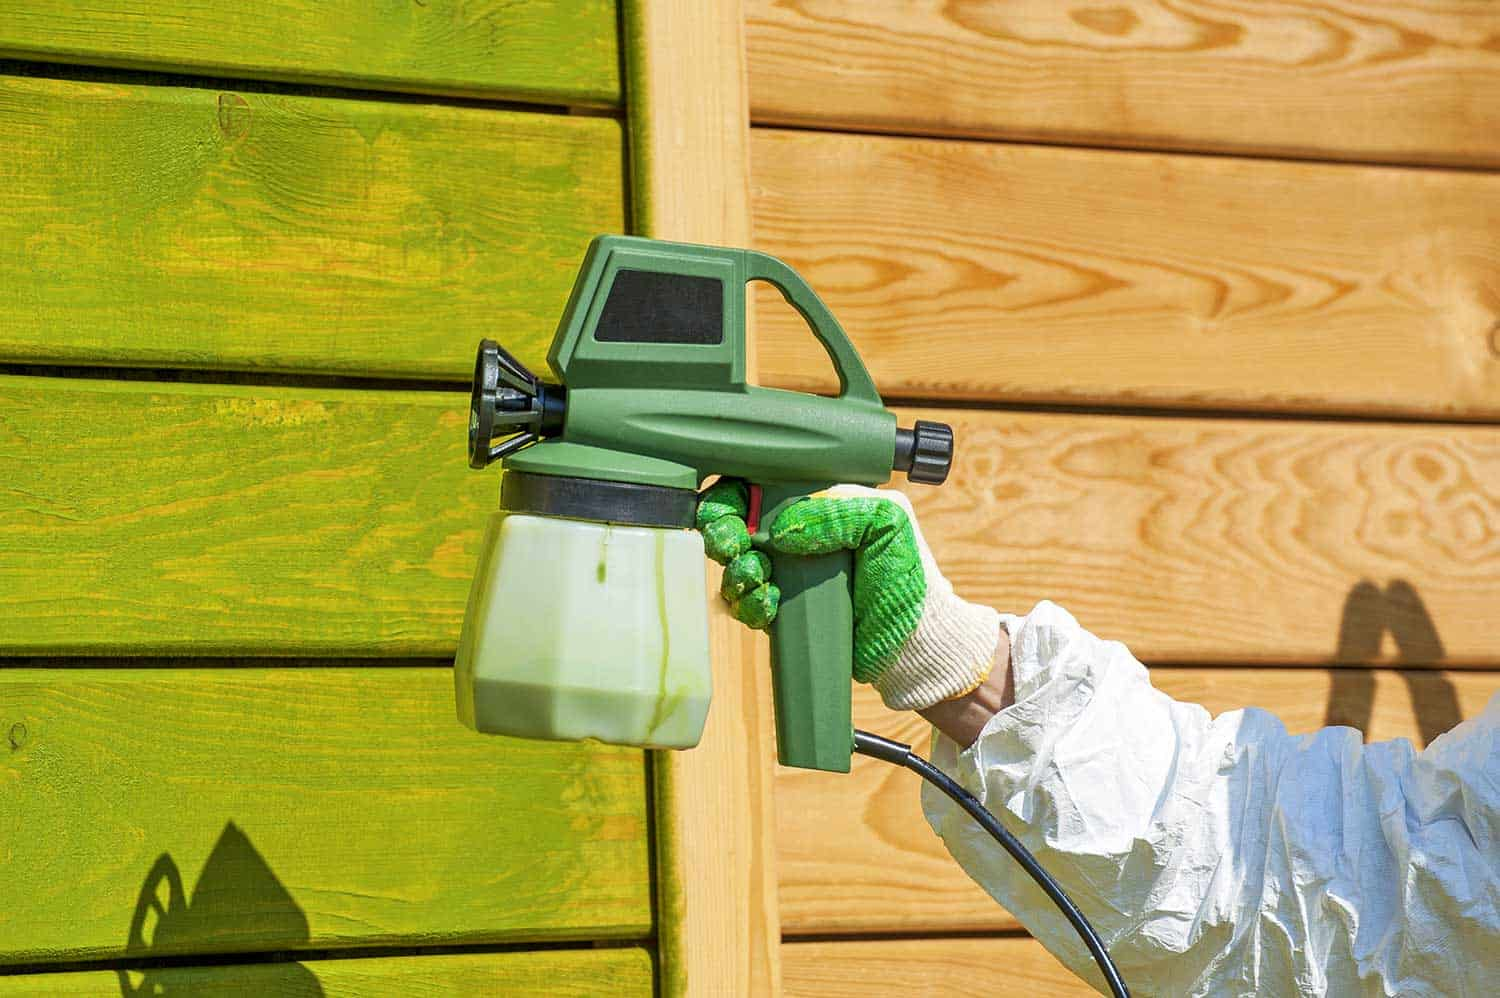 Hand painting wooden wall with spray gun